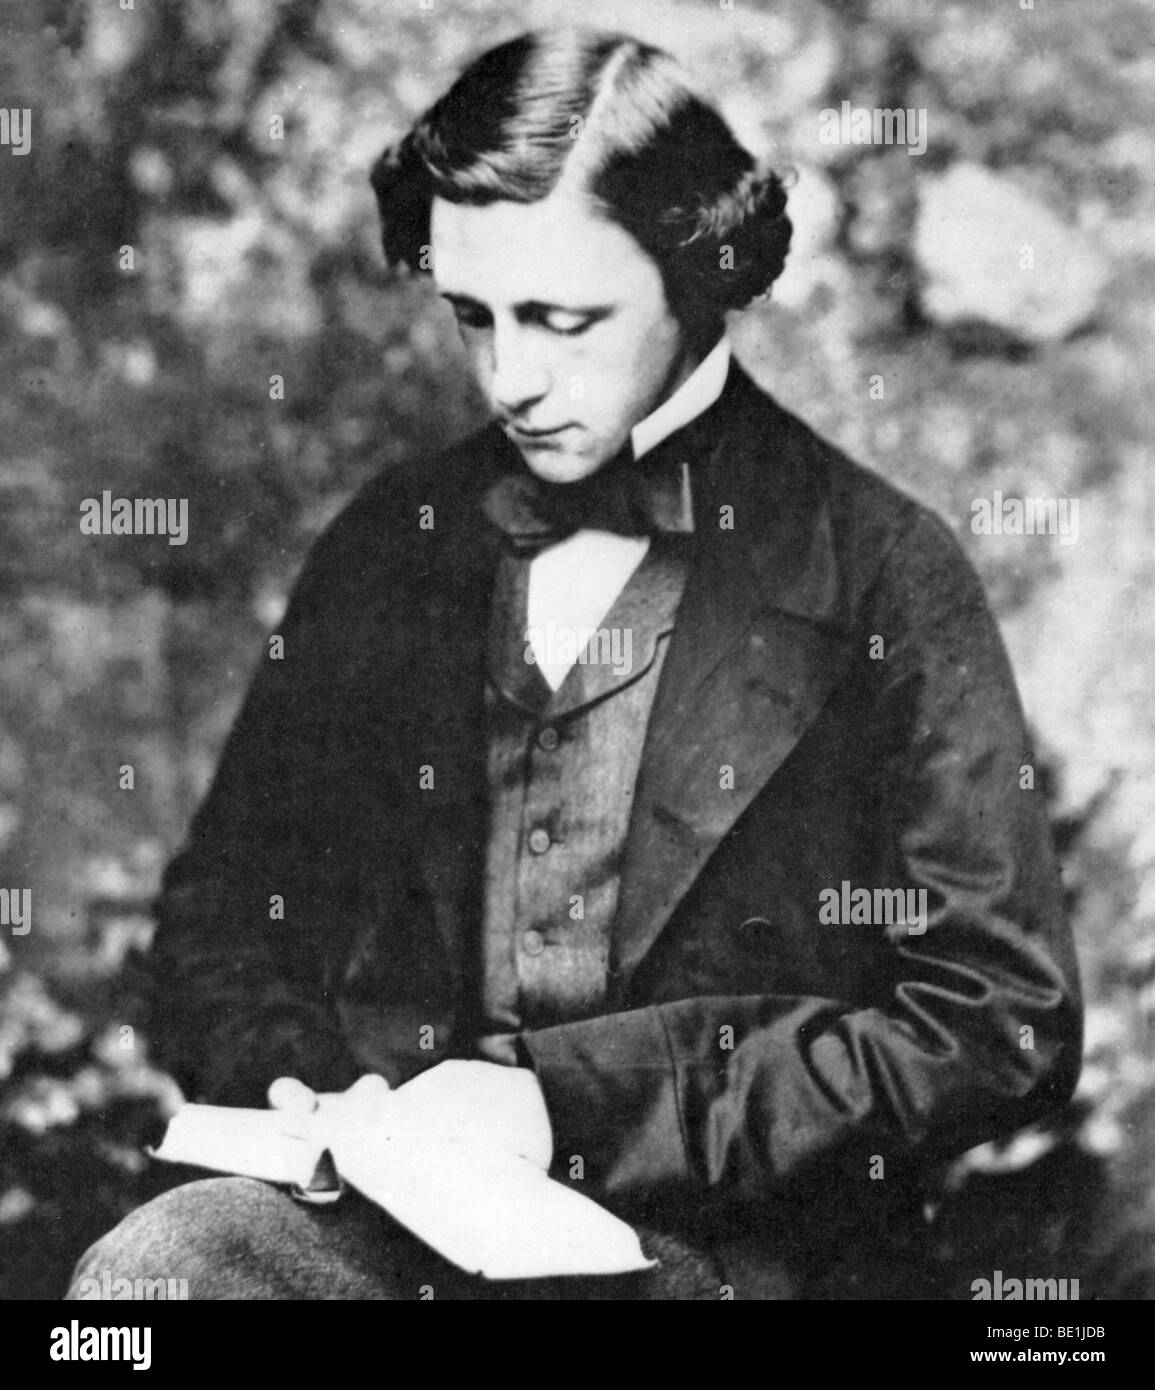 LEWIS CARROLL  English children's writer and mathematician (1832-98) - Stock Image